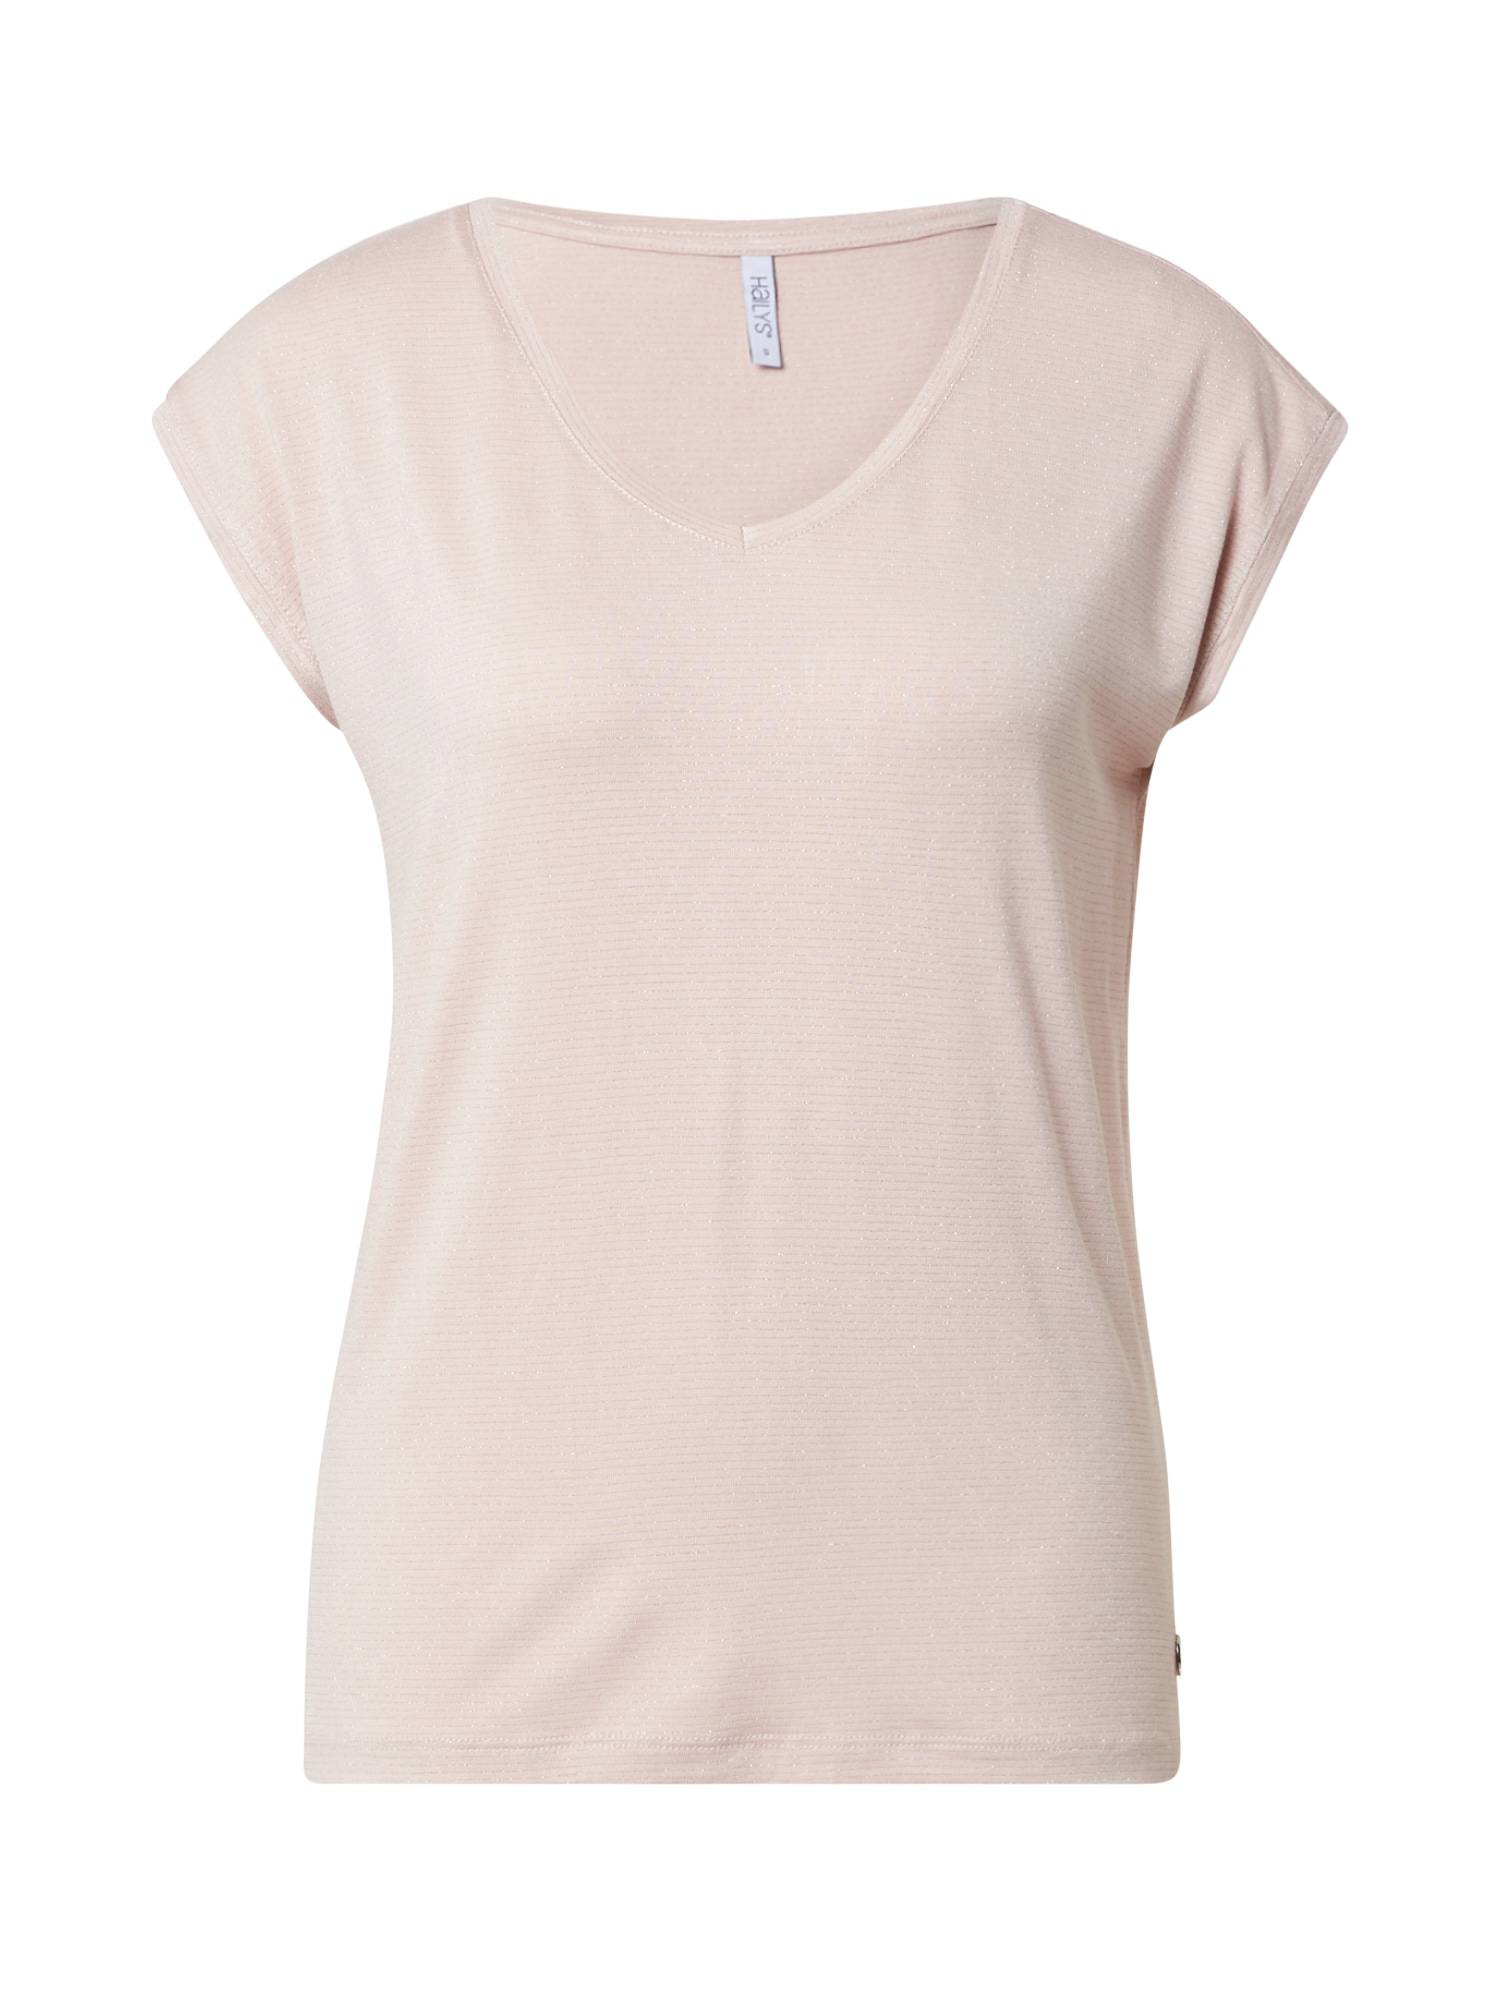 Hailys T-shirt 'TP Luxe'  - Rose - Taille: L - female